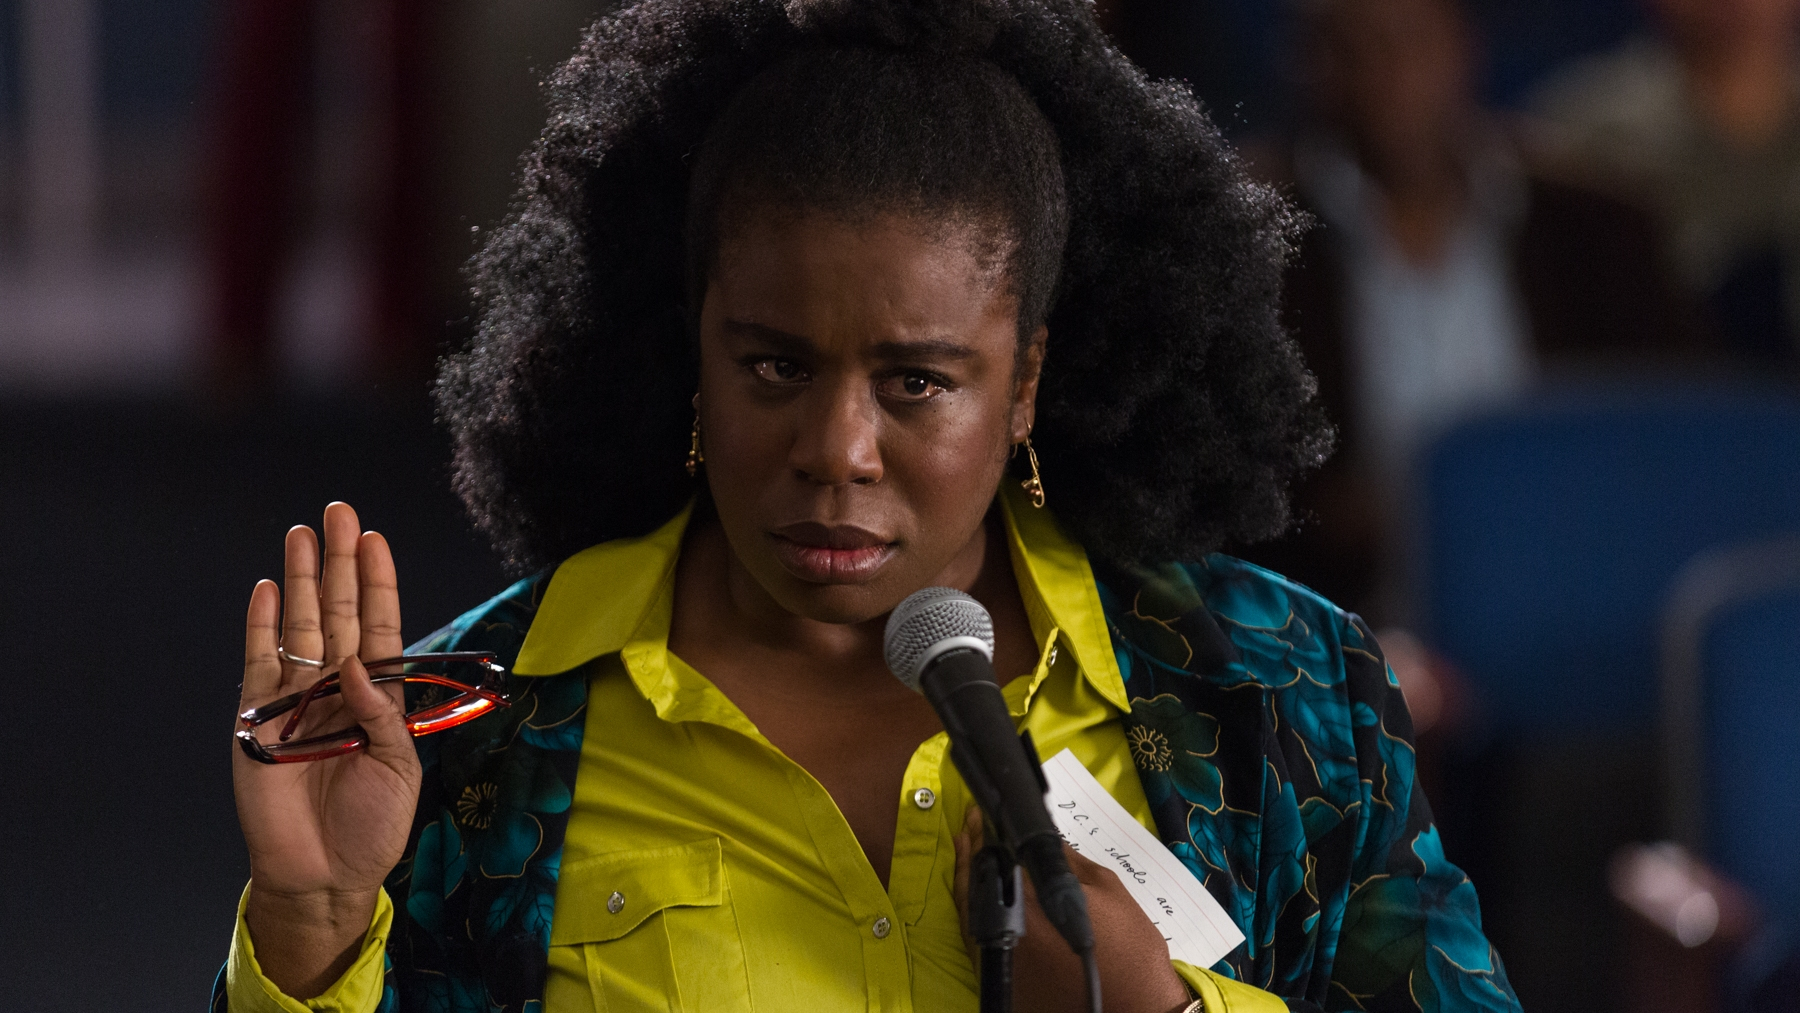 Virginia's (Uzo Aduba) true feelings about failing schools come out when she's told to ask her politician (Aunjanue Ellis) a scripted question.